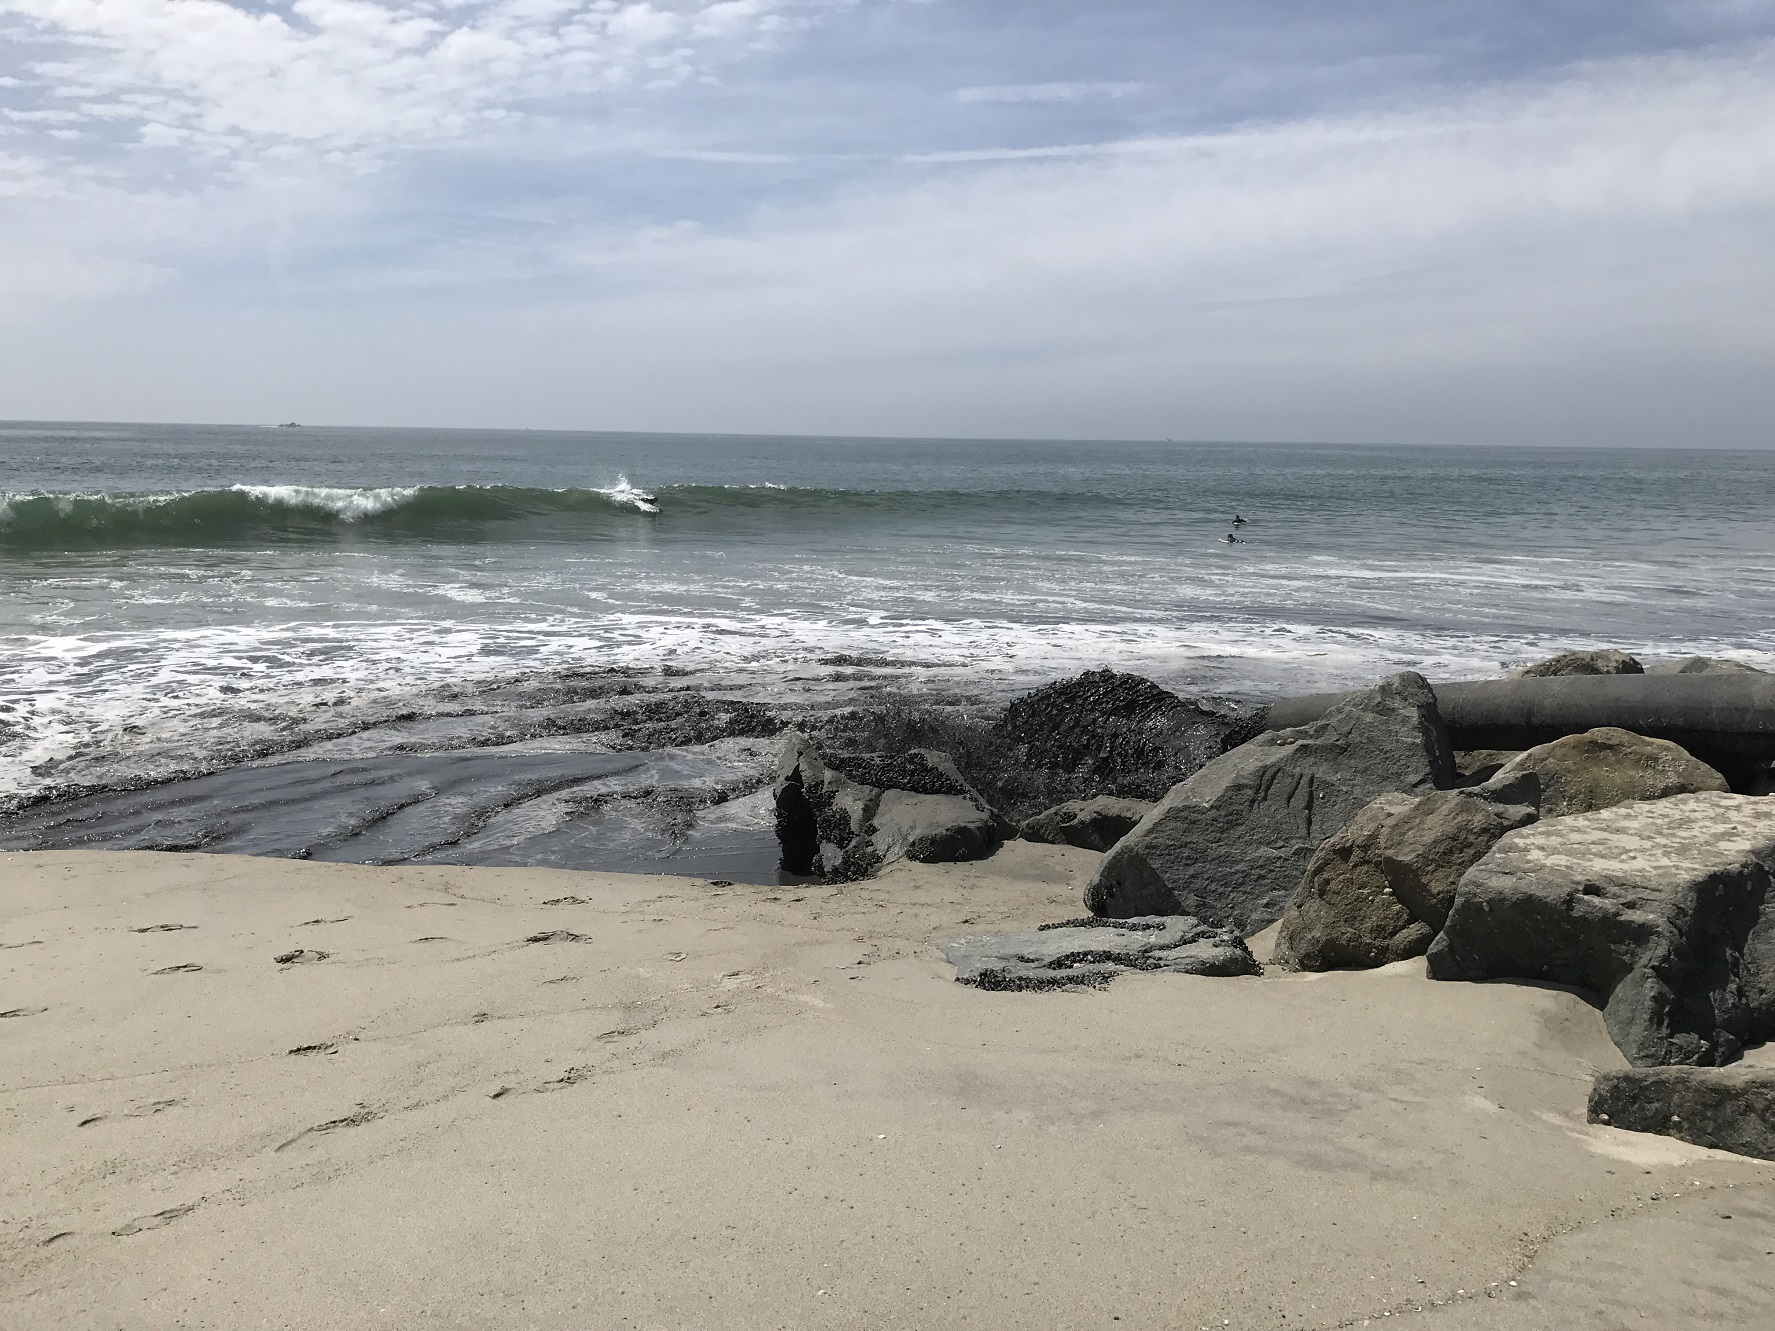 Next steps to oppose the desalination of water in Huntington Beach